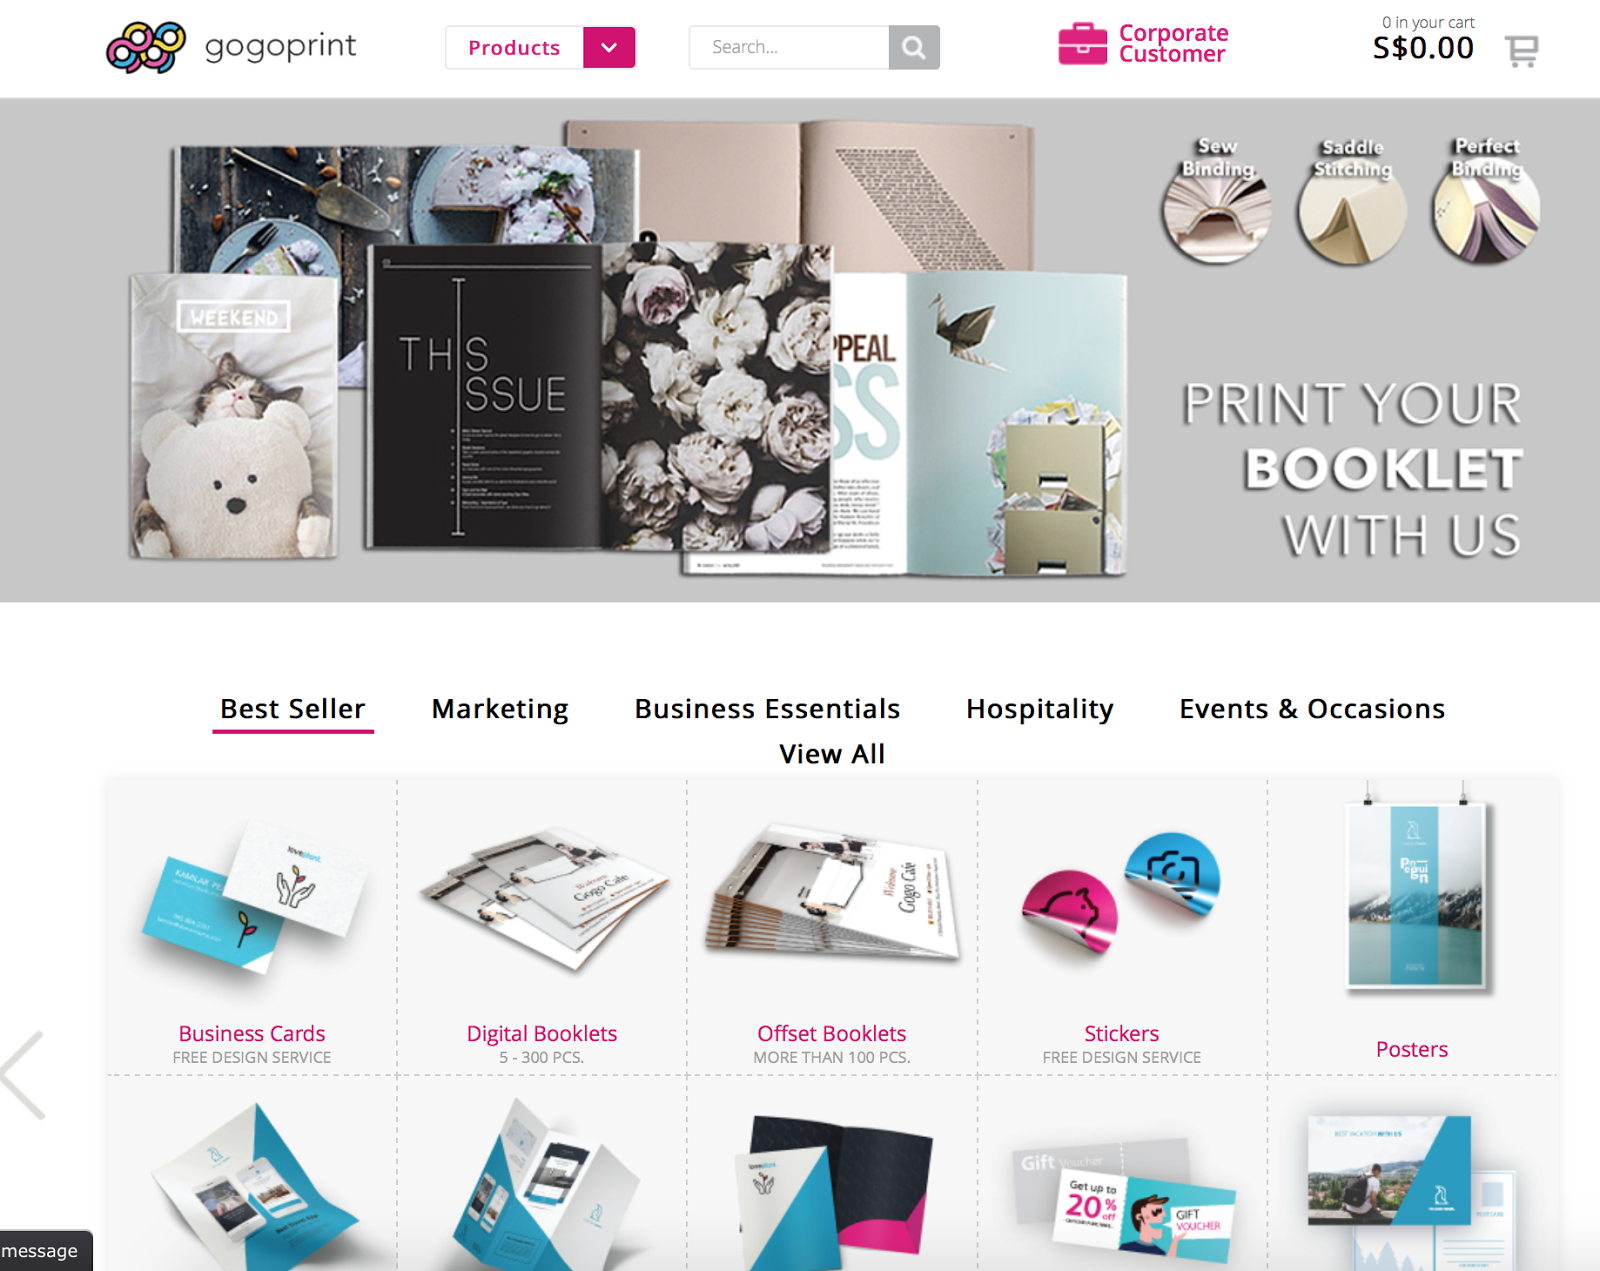 review gogoprint sg travellersdiari this is the home page it is easy to use their platform